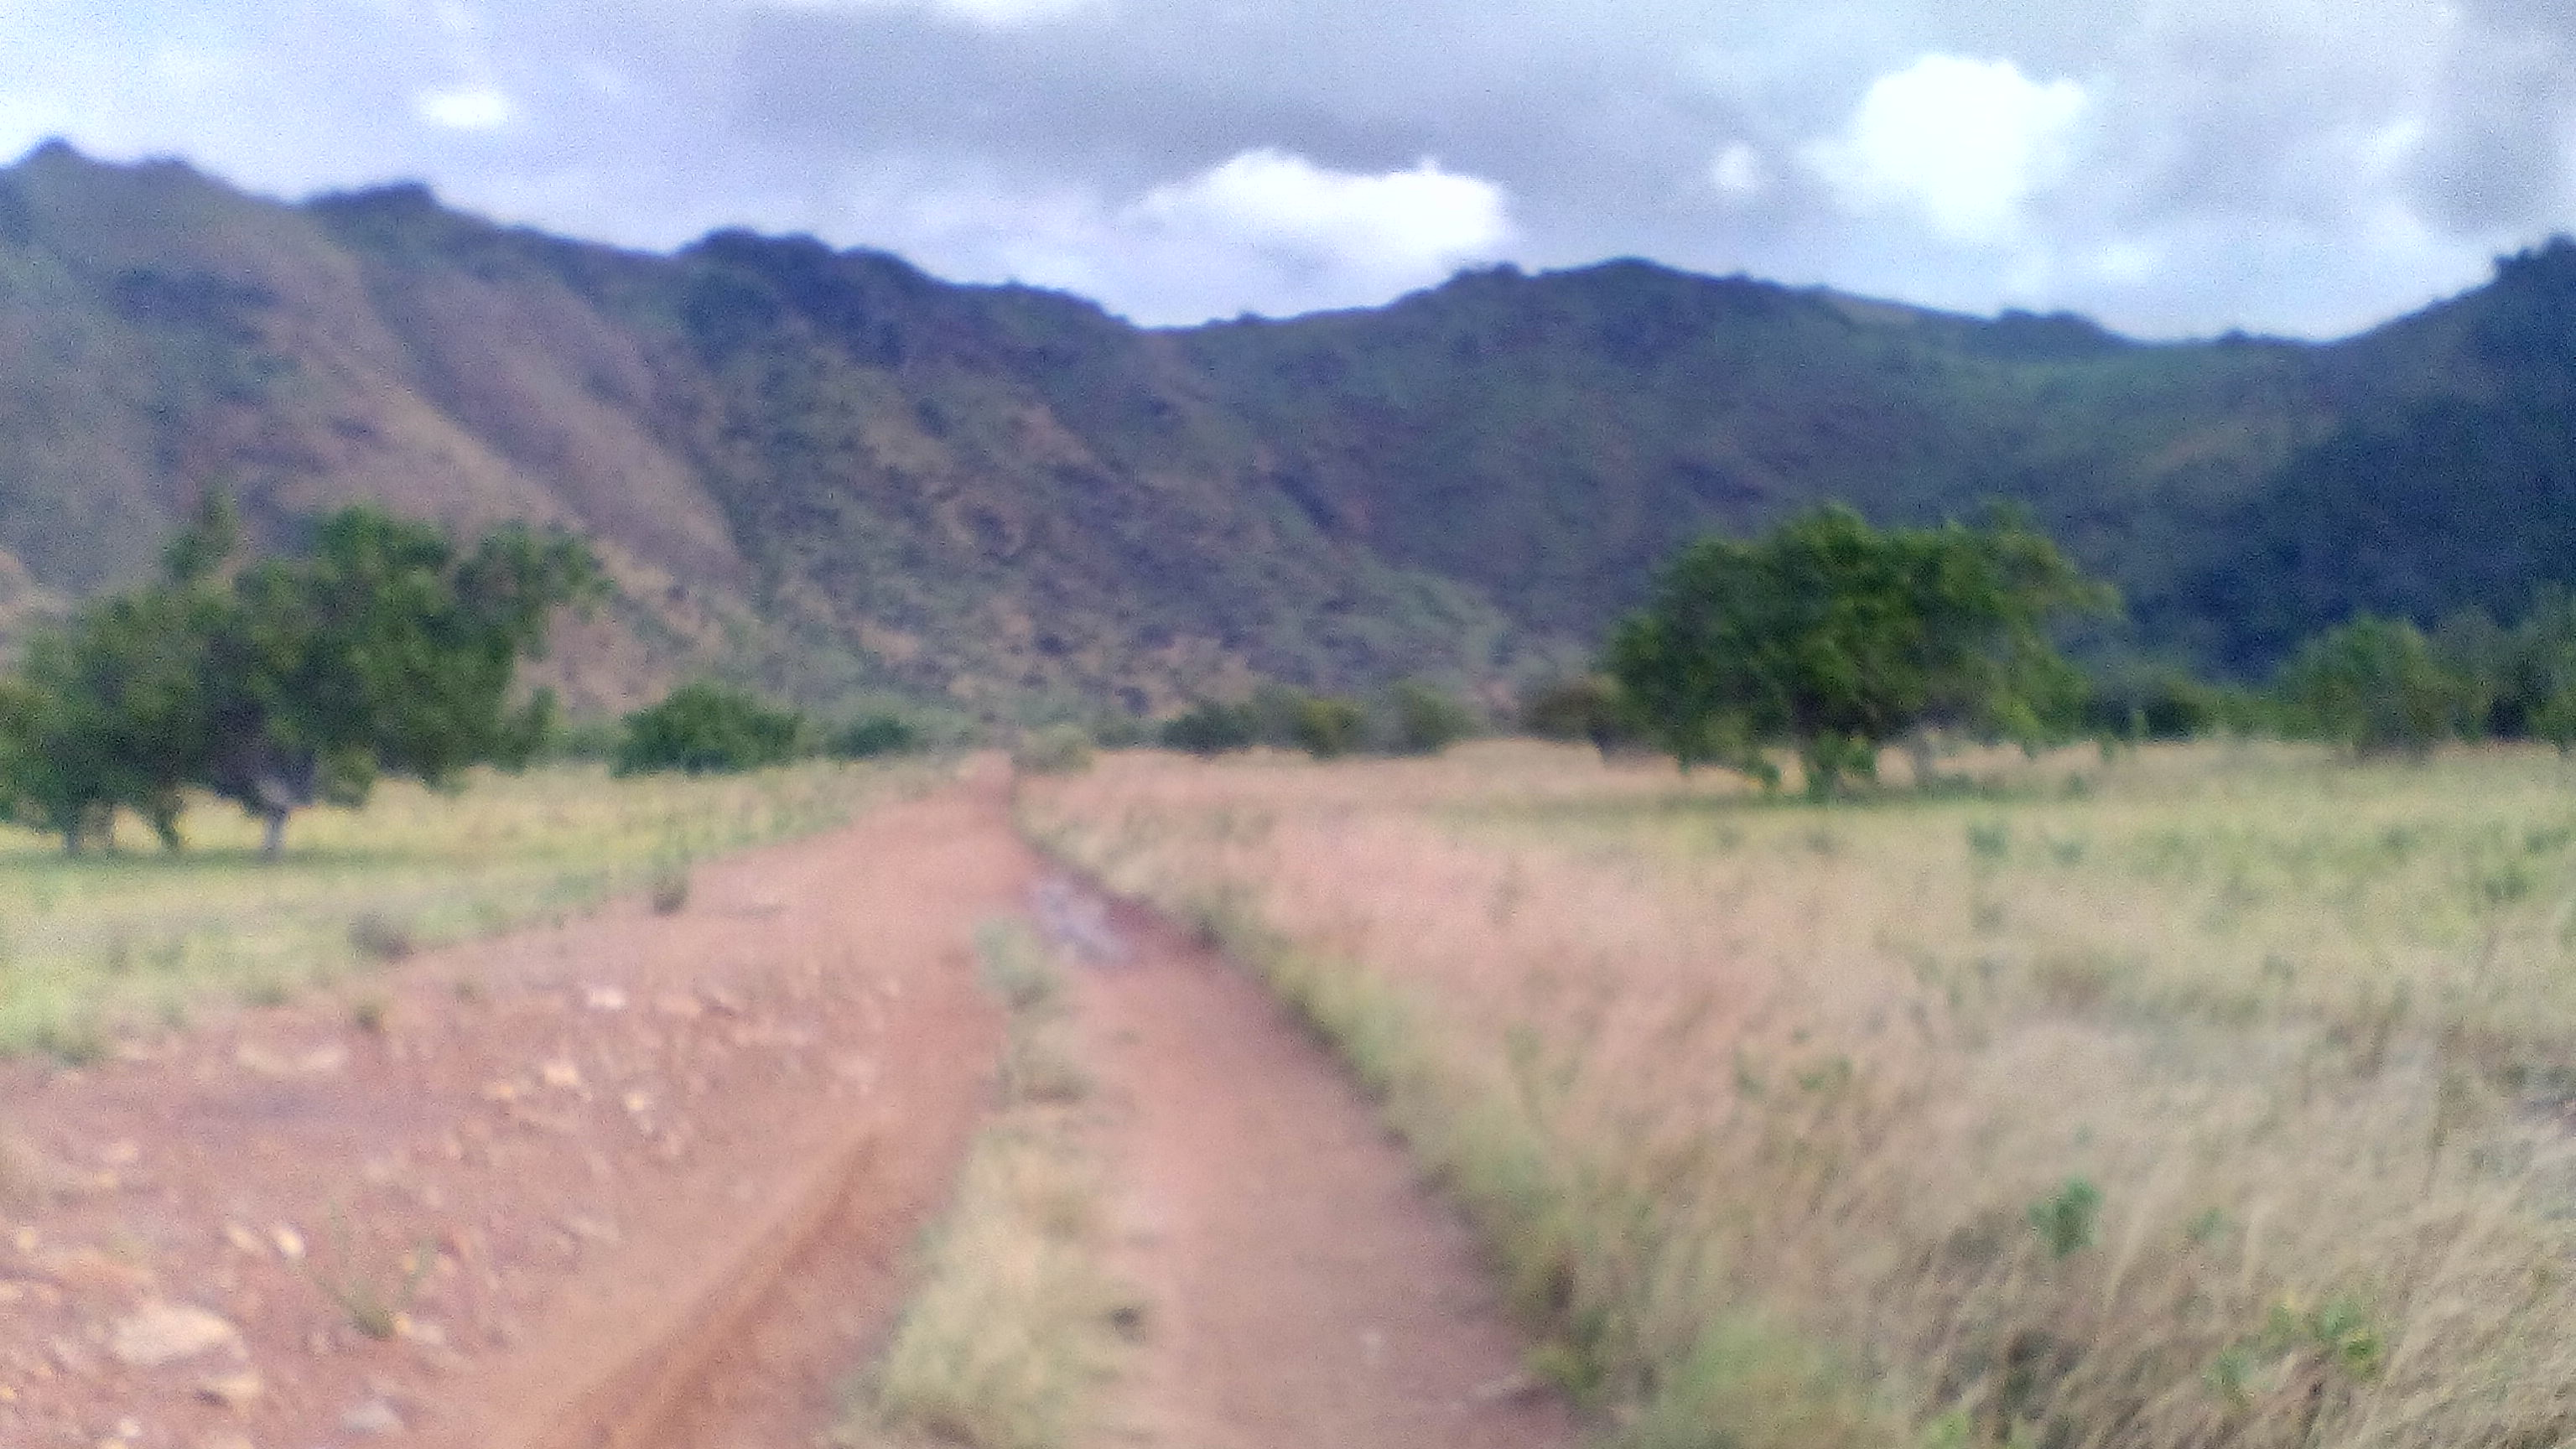 Karasabai Village – North Rupununi Savannahs